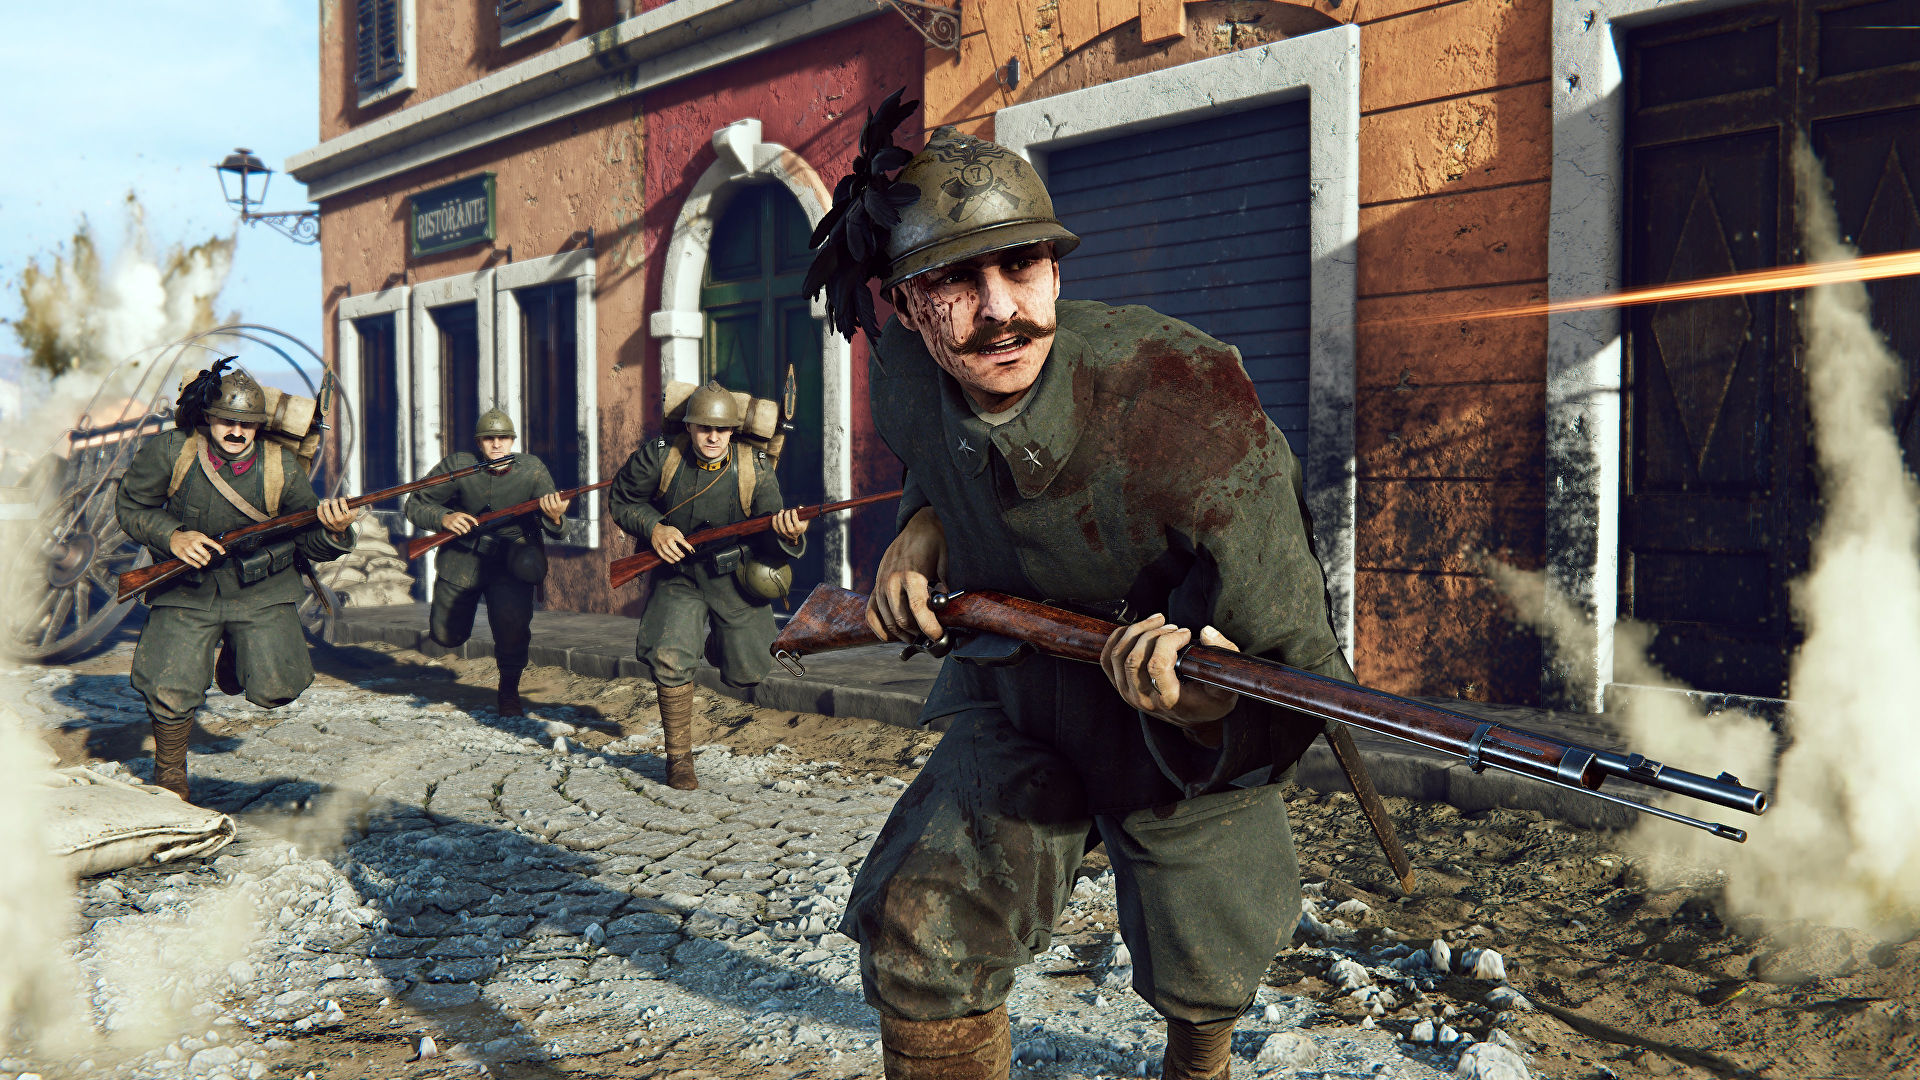 WW1 FPS Isonozo will continue the fight started by Verdun